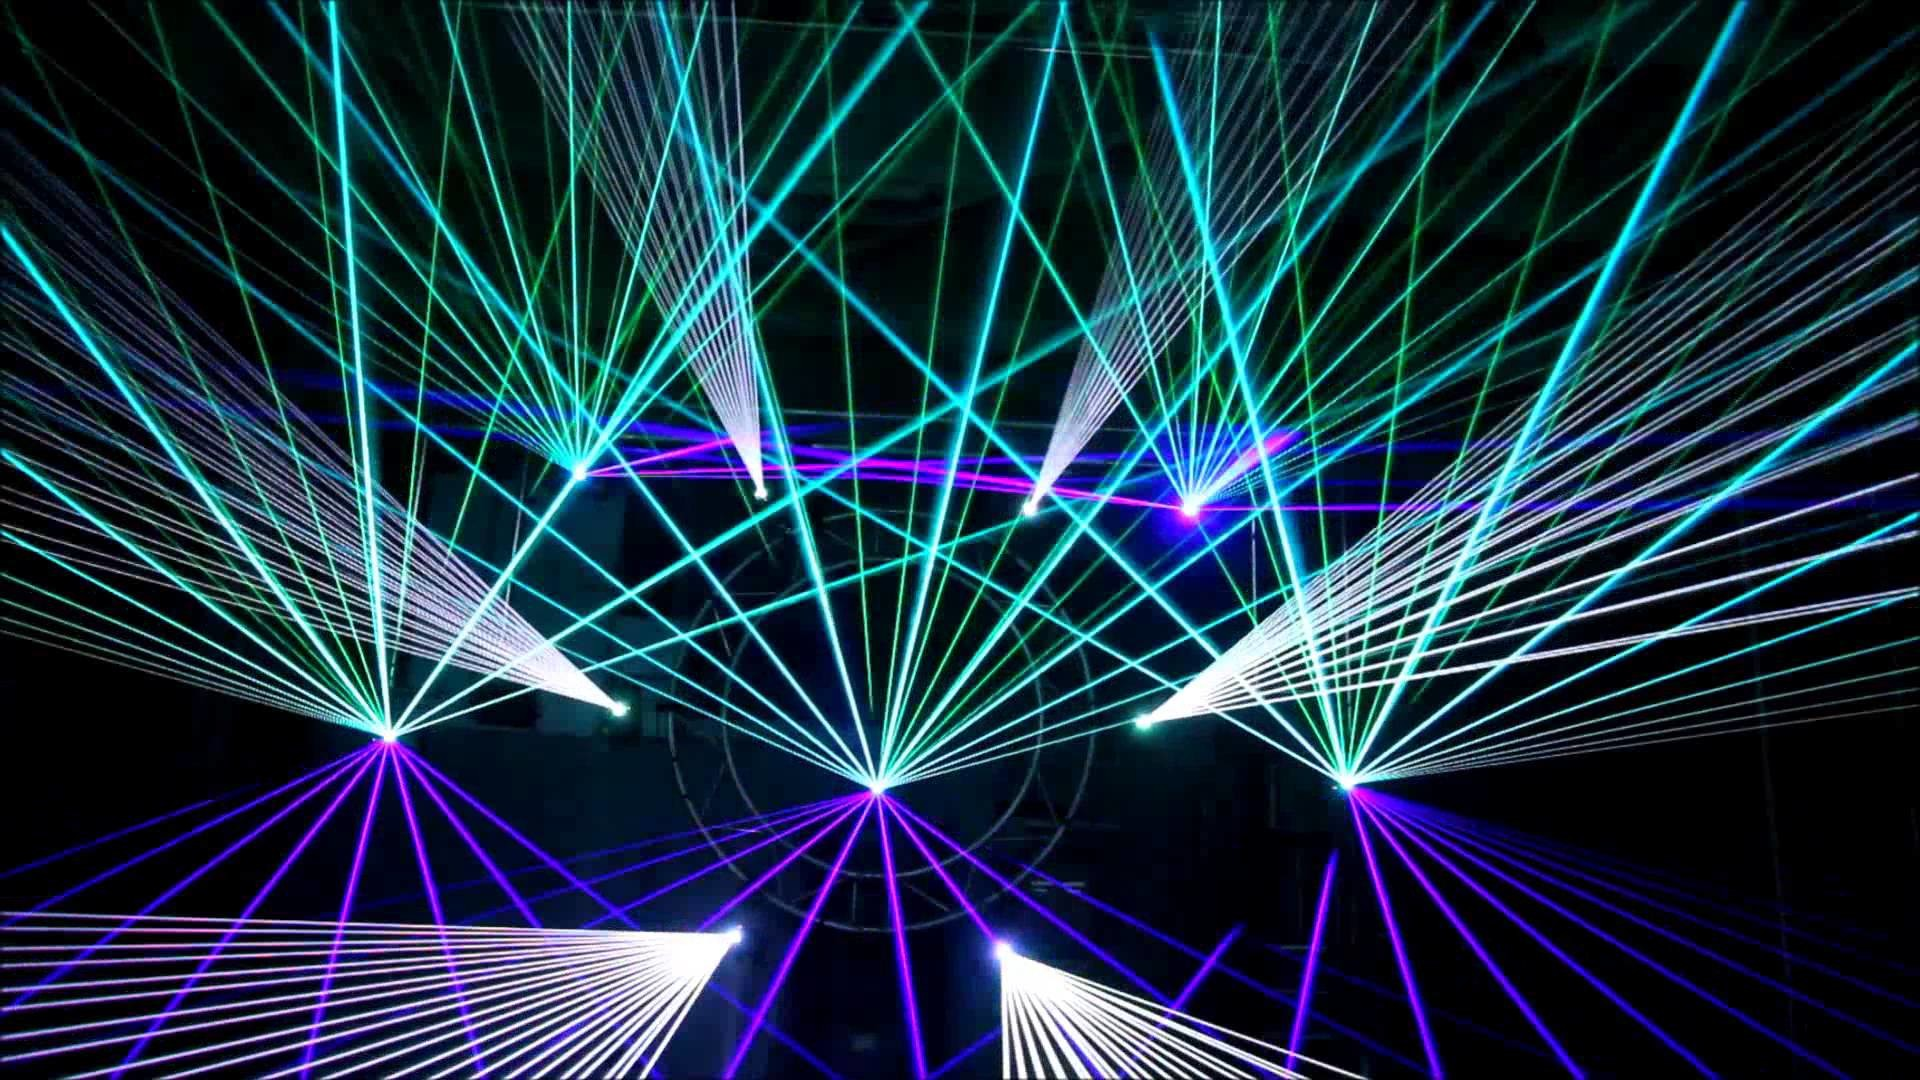 Tomorrowland 2016 Laser Show HD Wallpapers – Wallpaper Cave